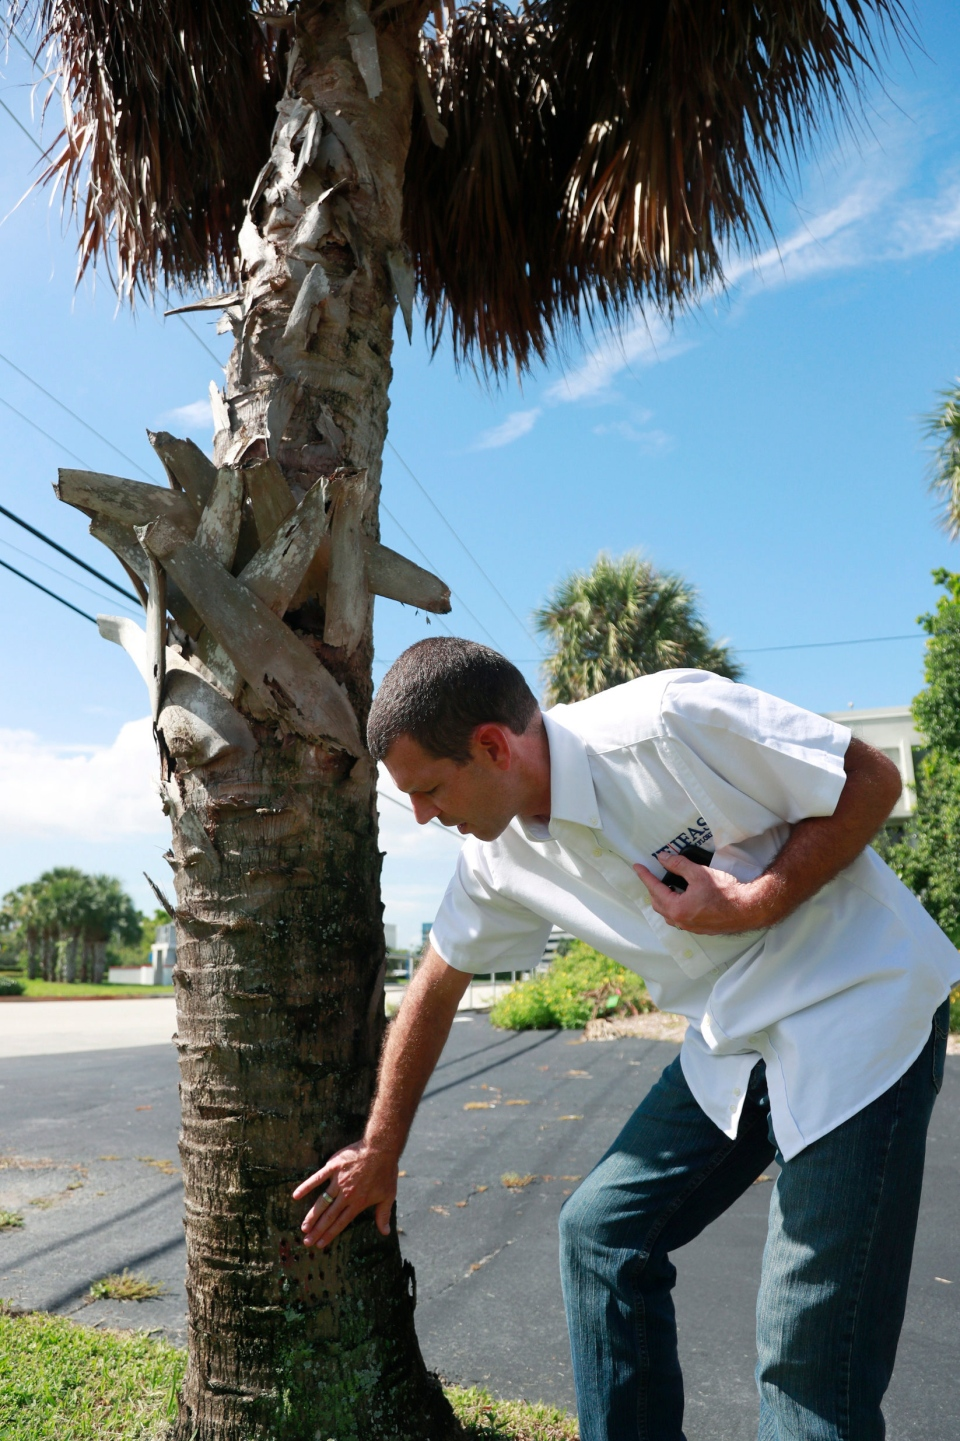 In this Wednesday, July 31, 2019, photo, Brian Bahder, assistant professor of entomology at the University of Florida, points to a cabbage palm tree that died from a lethal bronzing disease in Davie, Fla. (AP Photo/Wilfredo Lee)